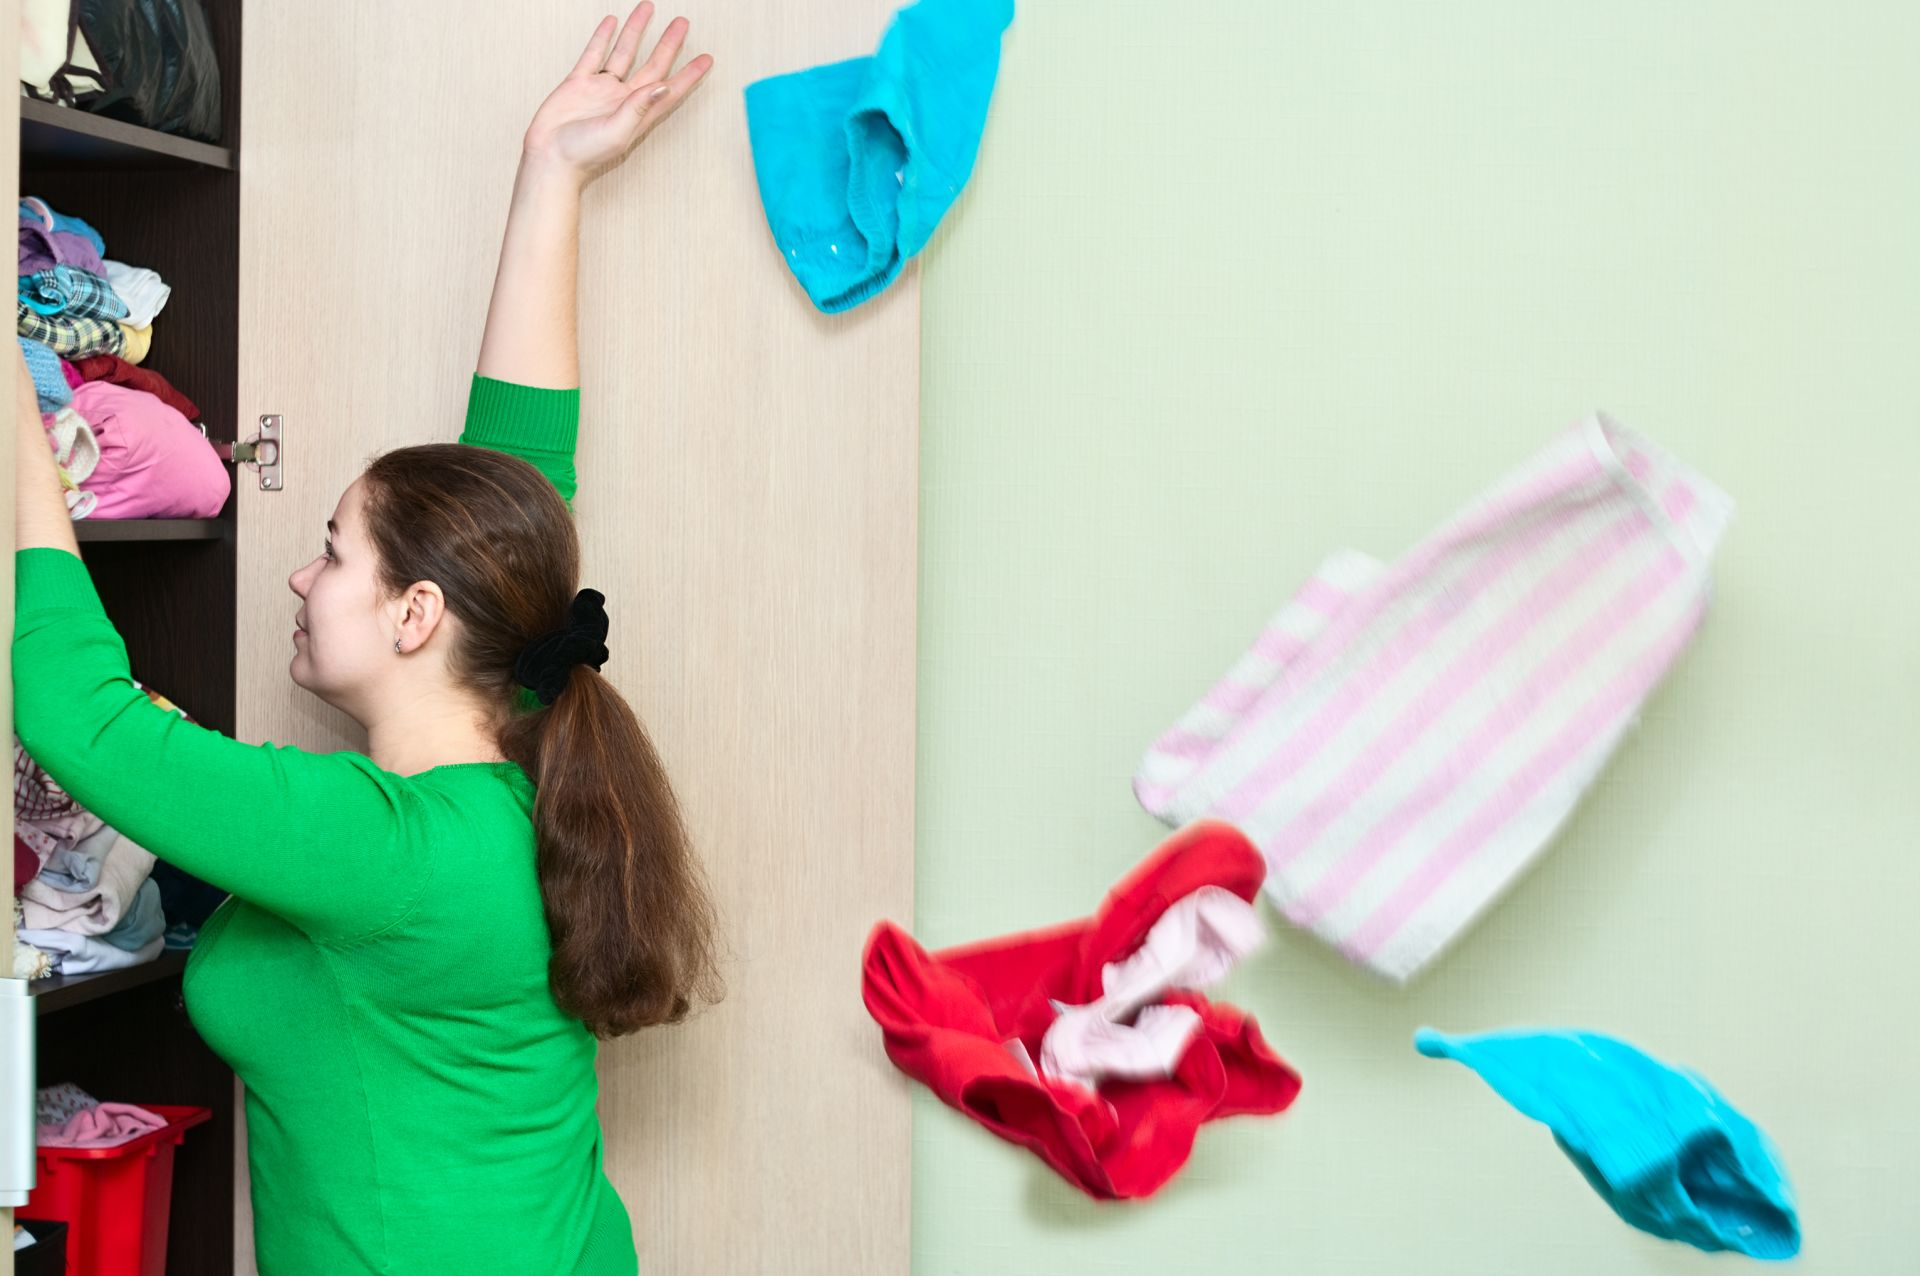 Get in the zone for organizing your home